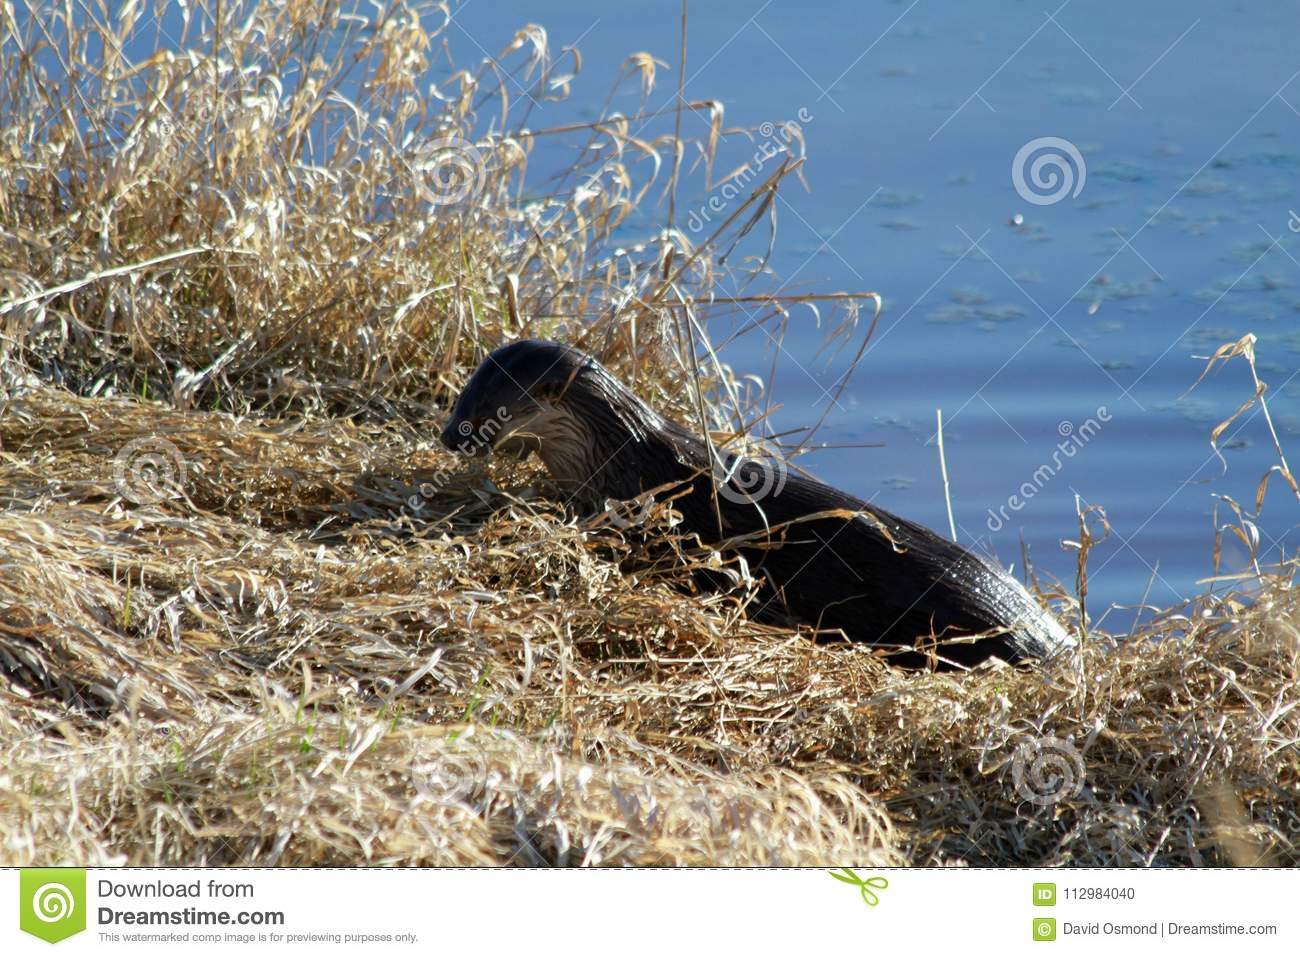 An otter harvesting grass on a sunny day